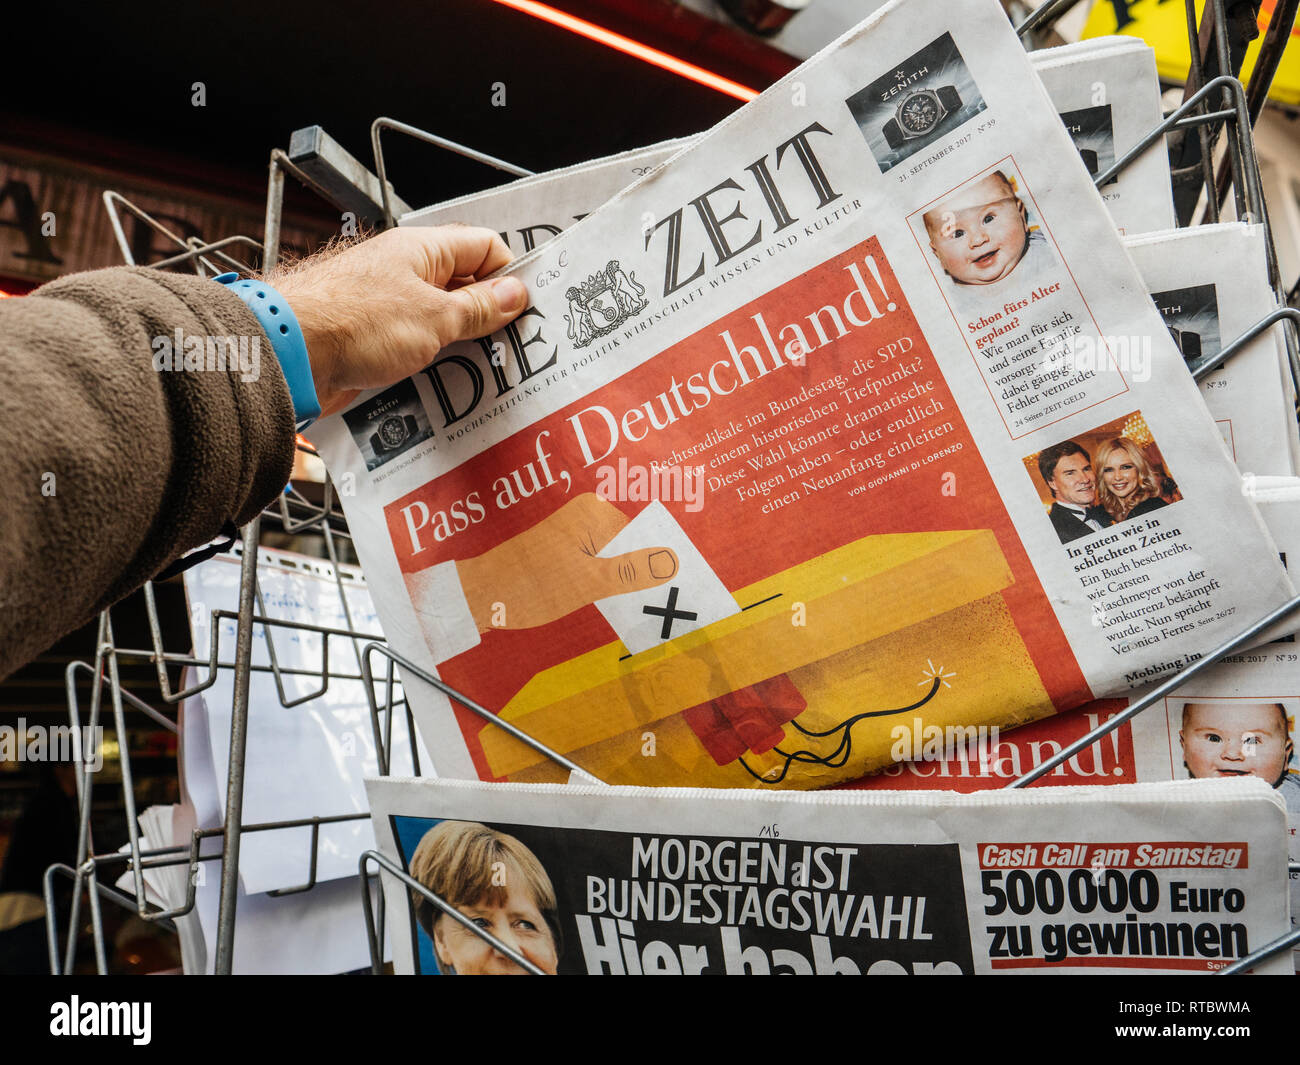 PARIS, FRANCE - SEP 23, 2017: Man buying latest newspaper Die Zeit German press with portrait of Angela Merkel before the election in Germany for the Chancellor of Germany, the head of the federal government, currently Angela Merkel - Stock Image